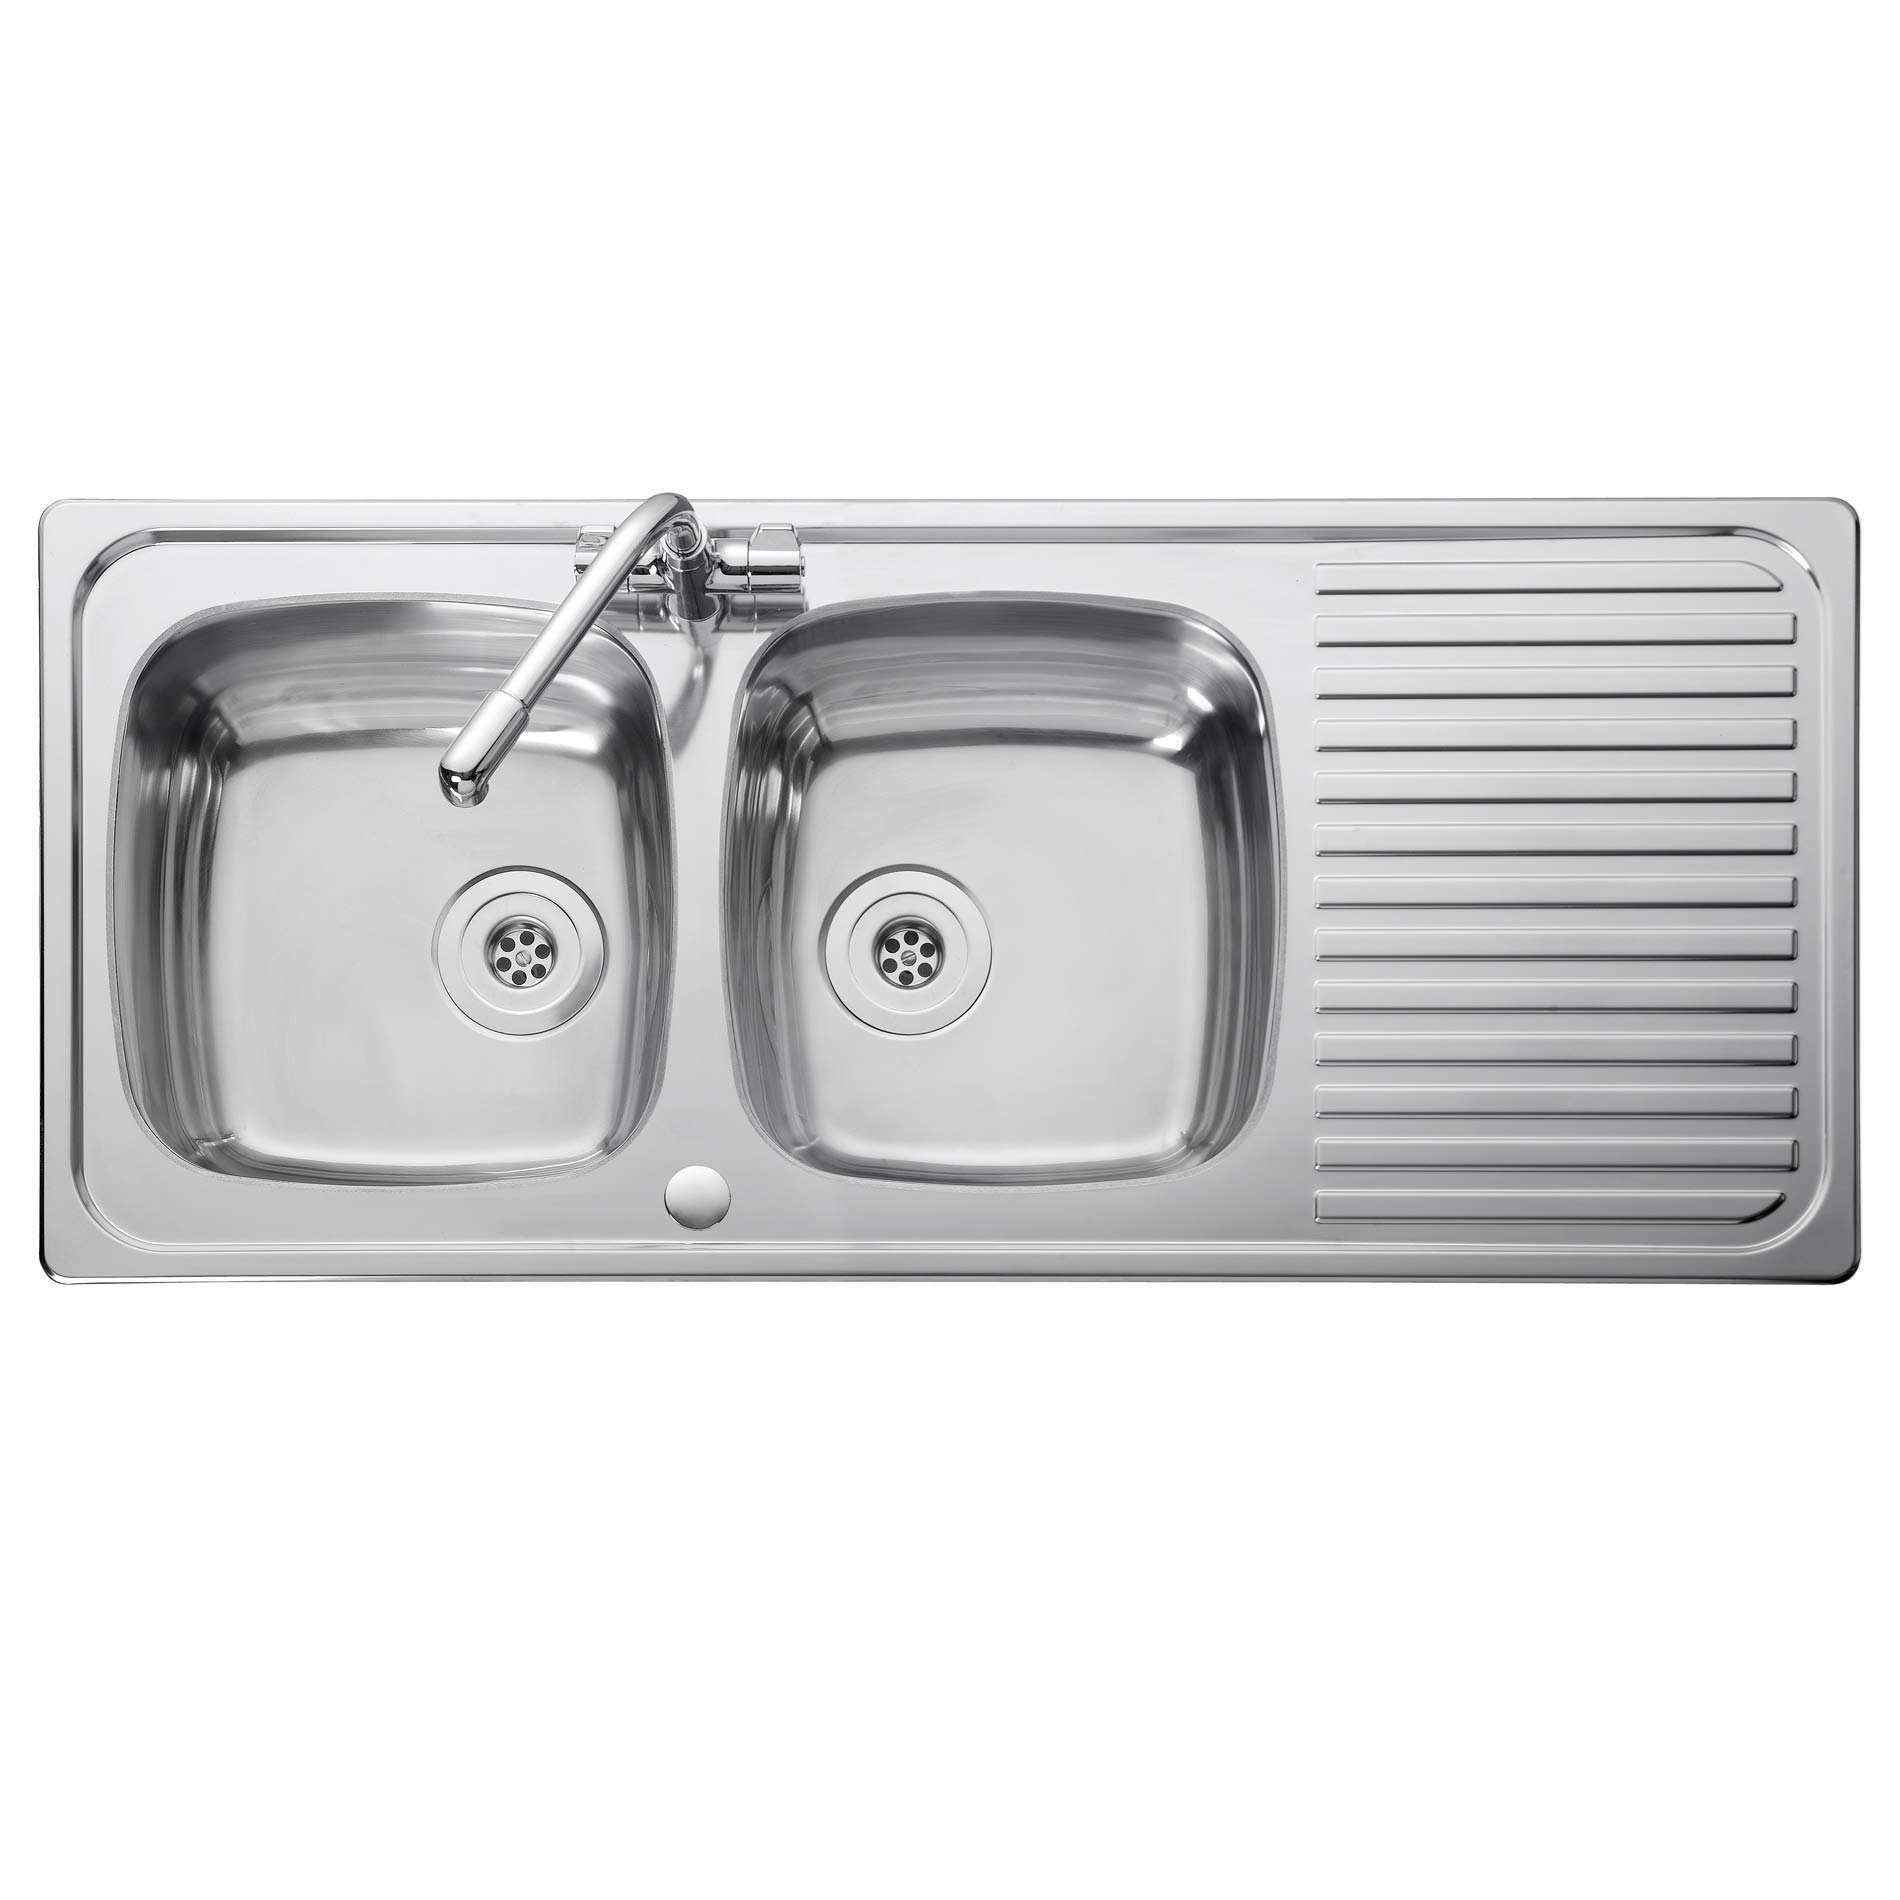 Picture of Linear LR1160DB Stainless Steel Sink